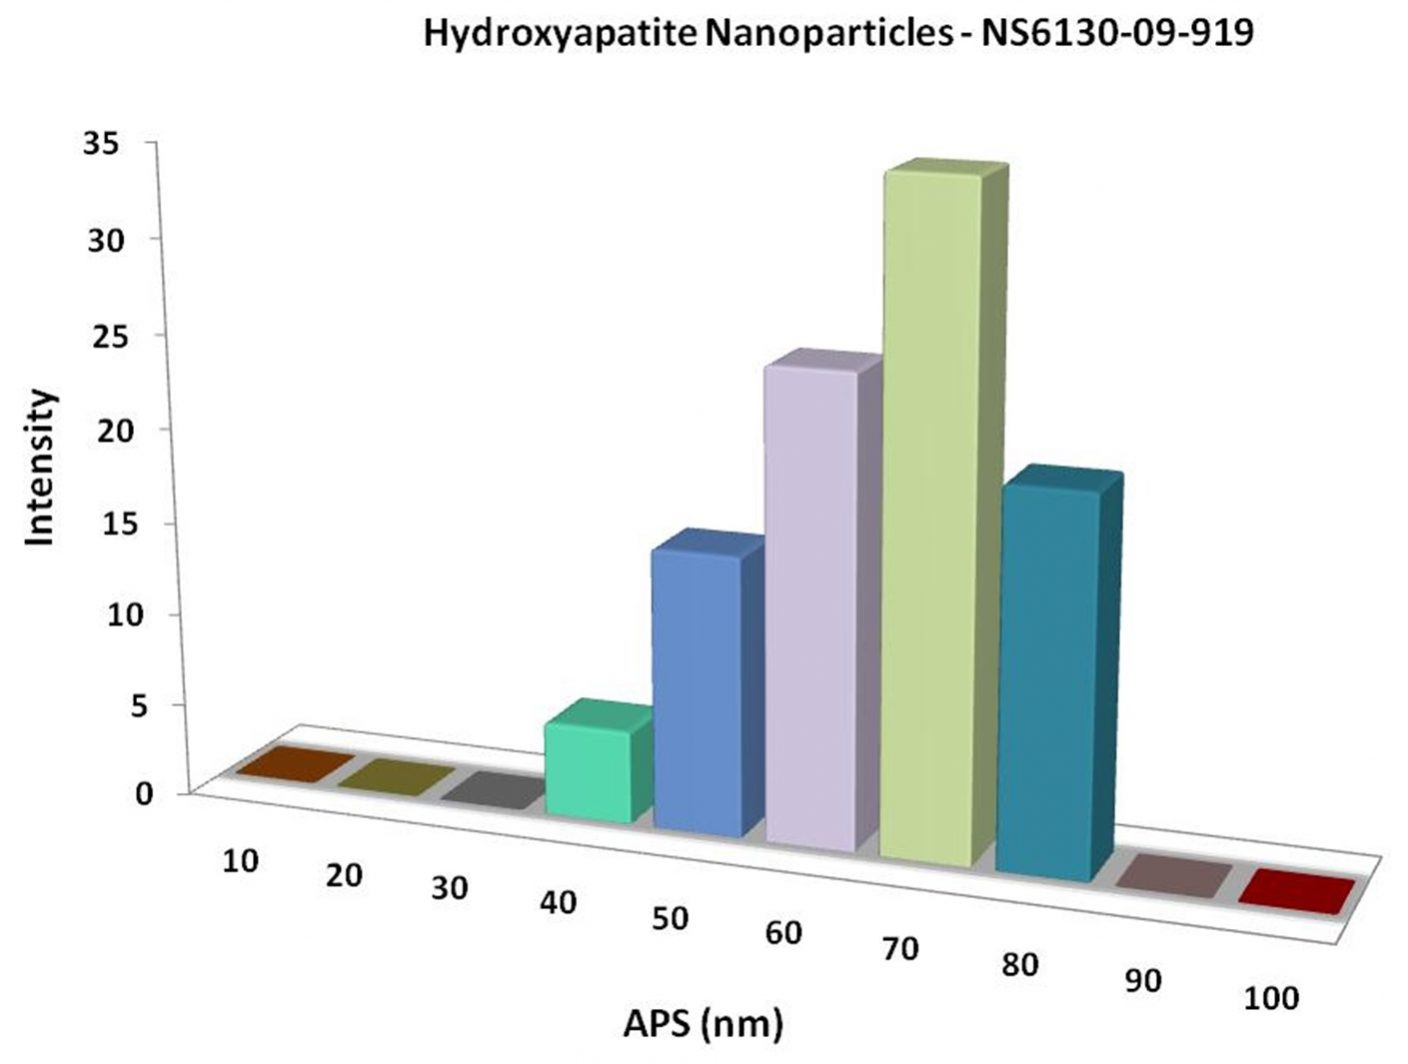 Particles Size Analysis - Hydroxyapatite Nanoparticles